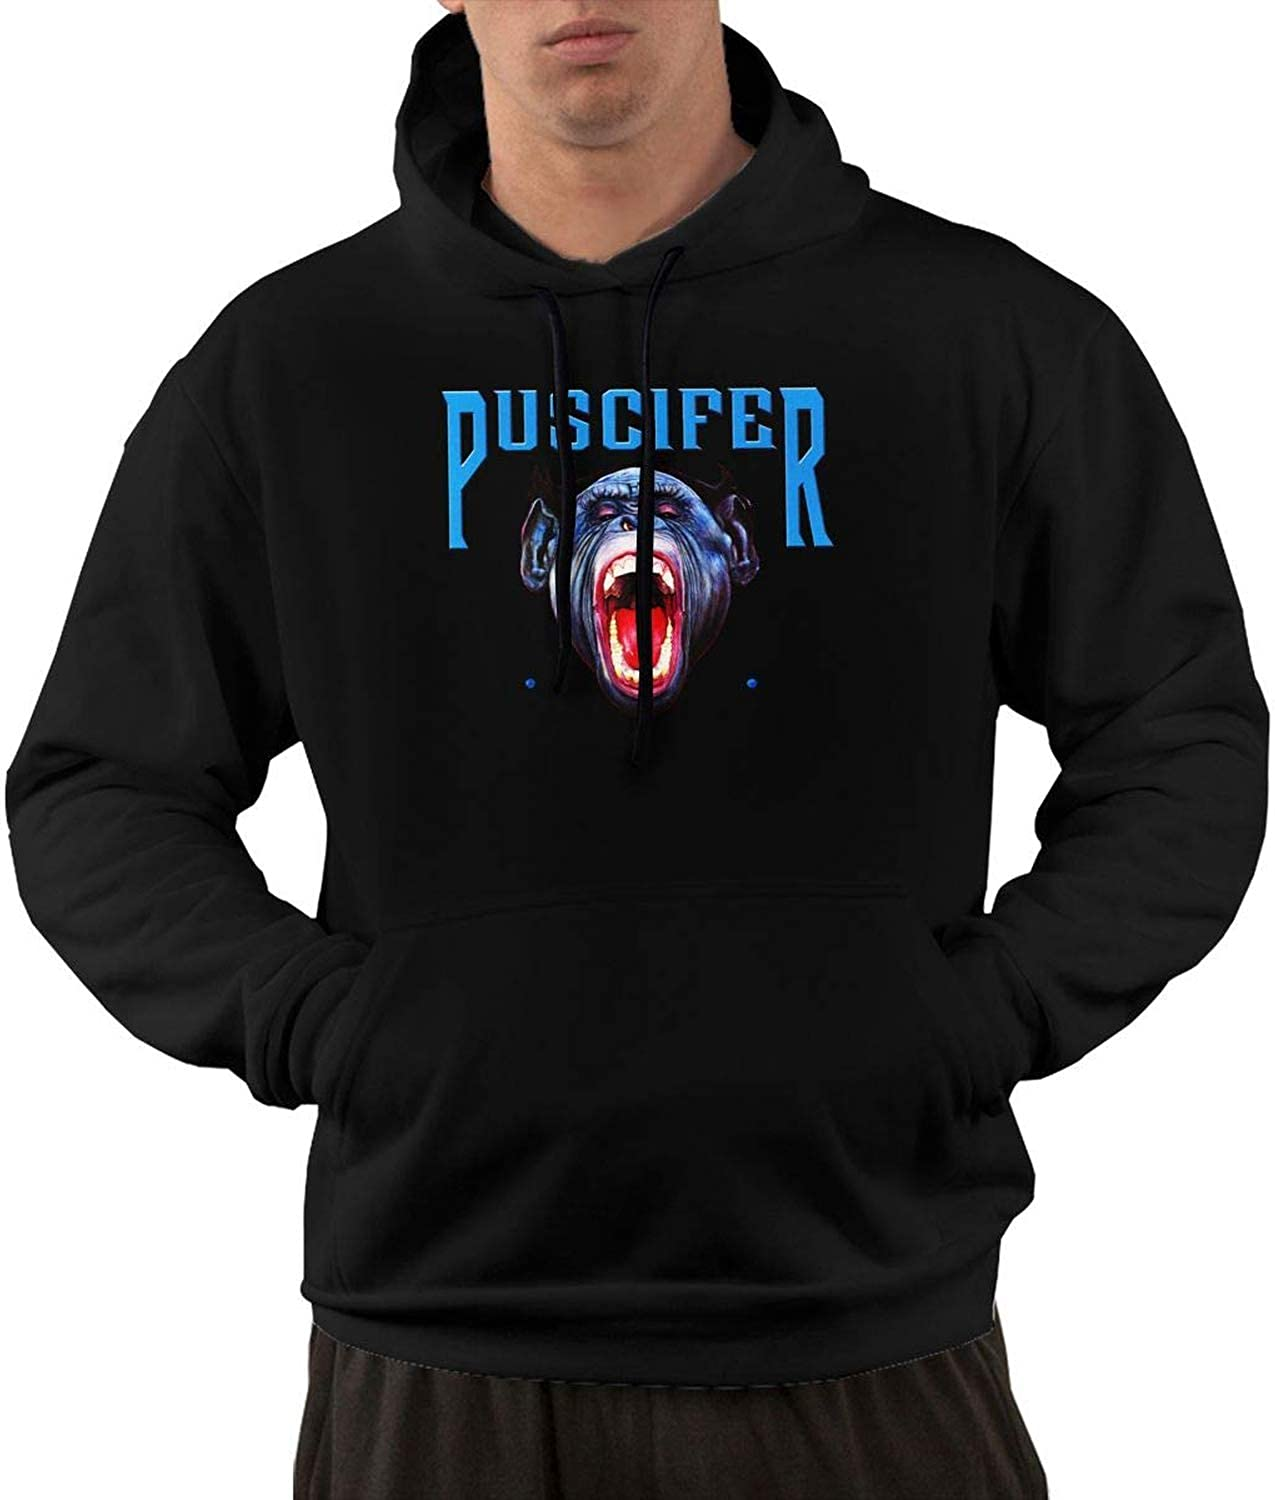 d816a075 To-night Puscifer Men's Men's Men's Hoodies Hooded Sweatshirt with Pocket  Black 8fc6b4